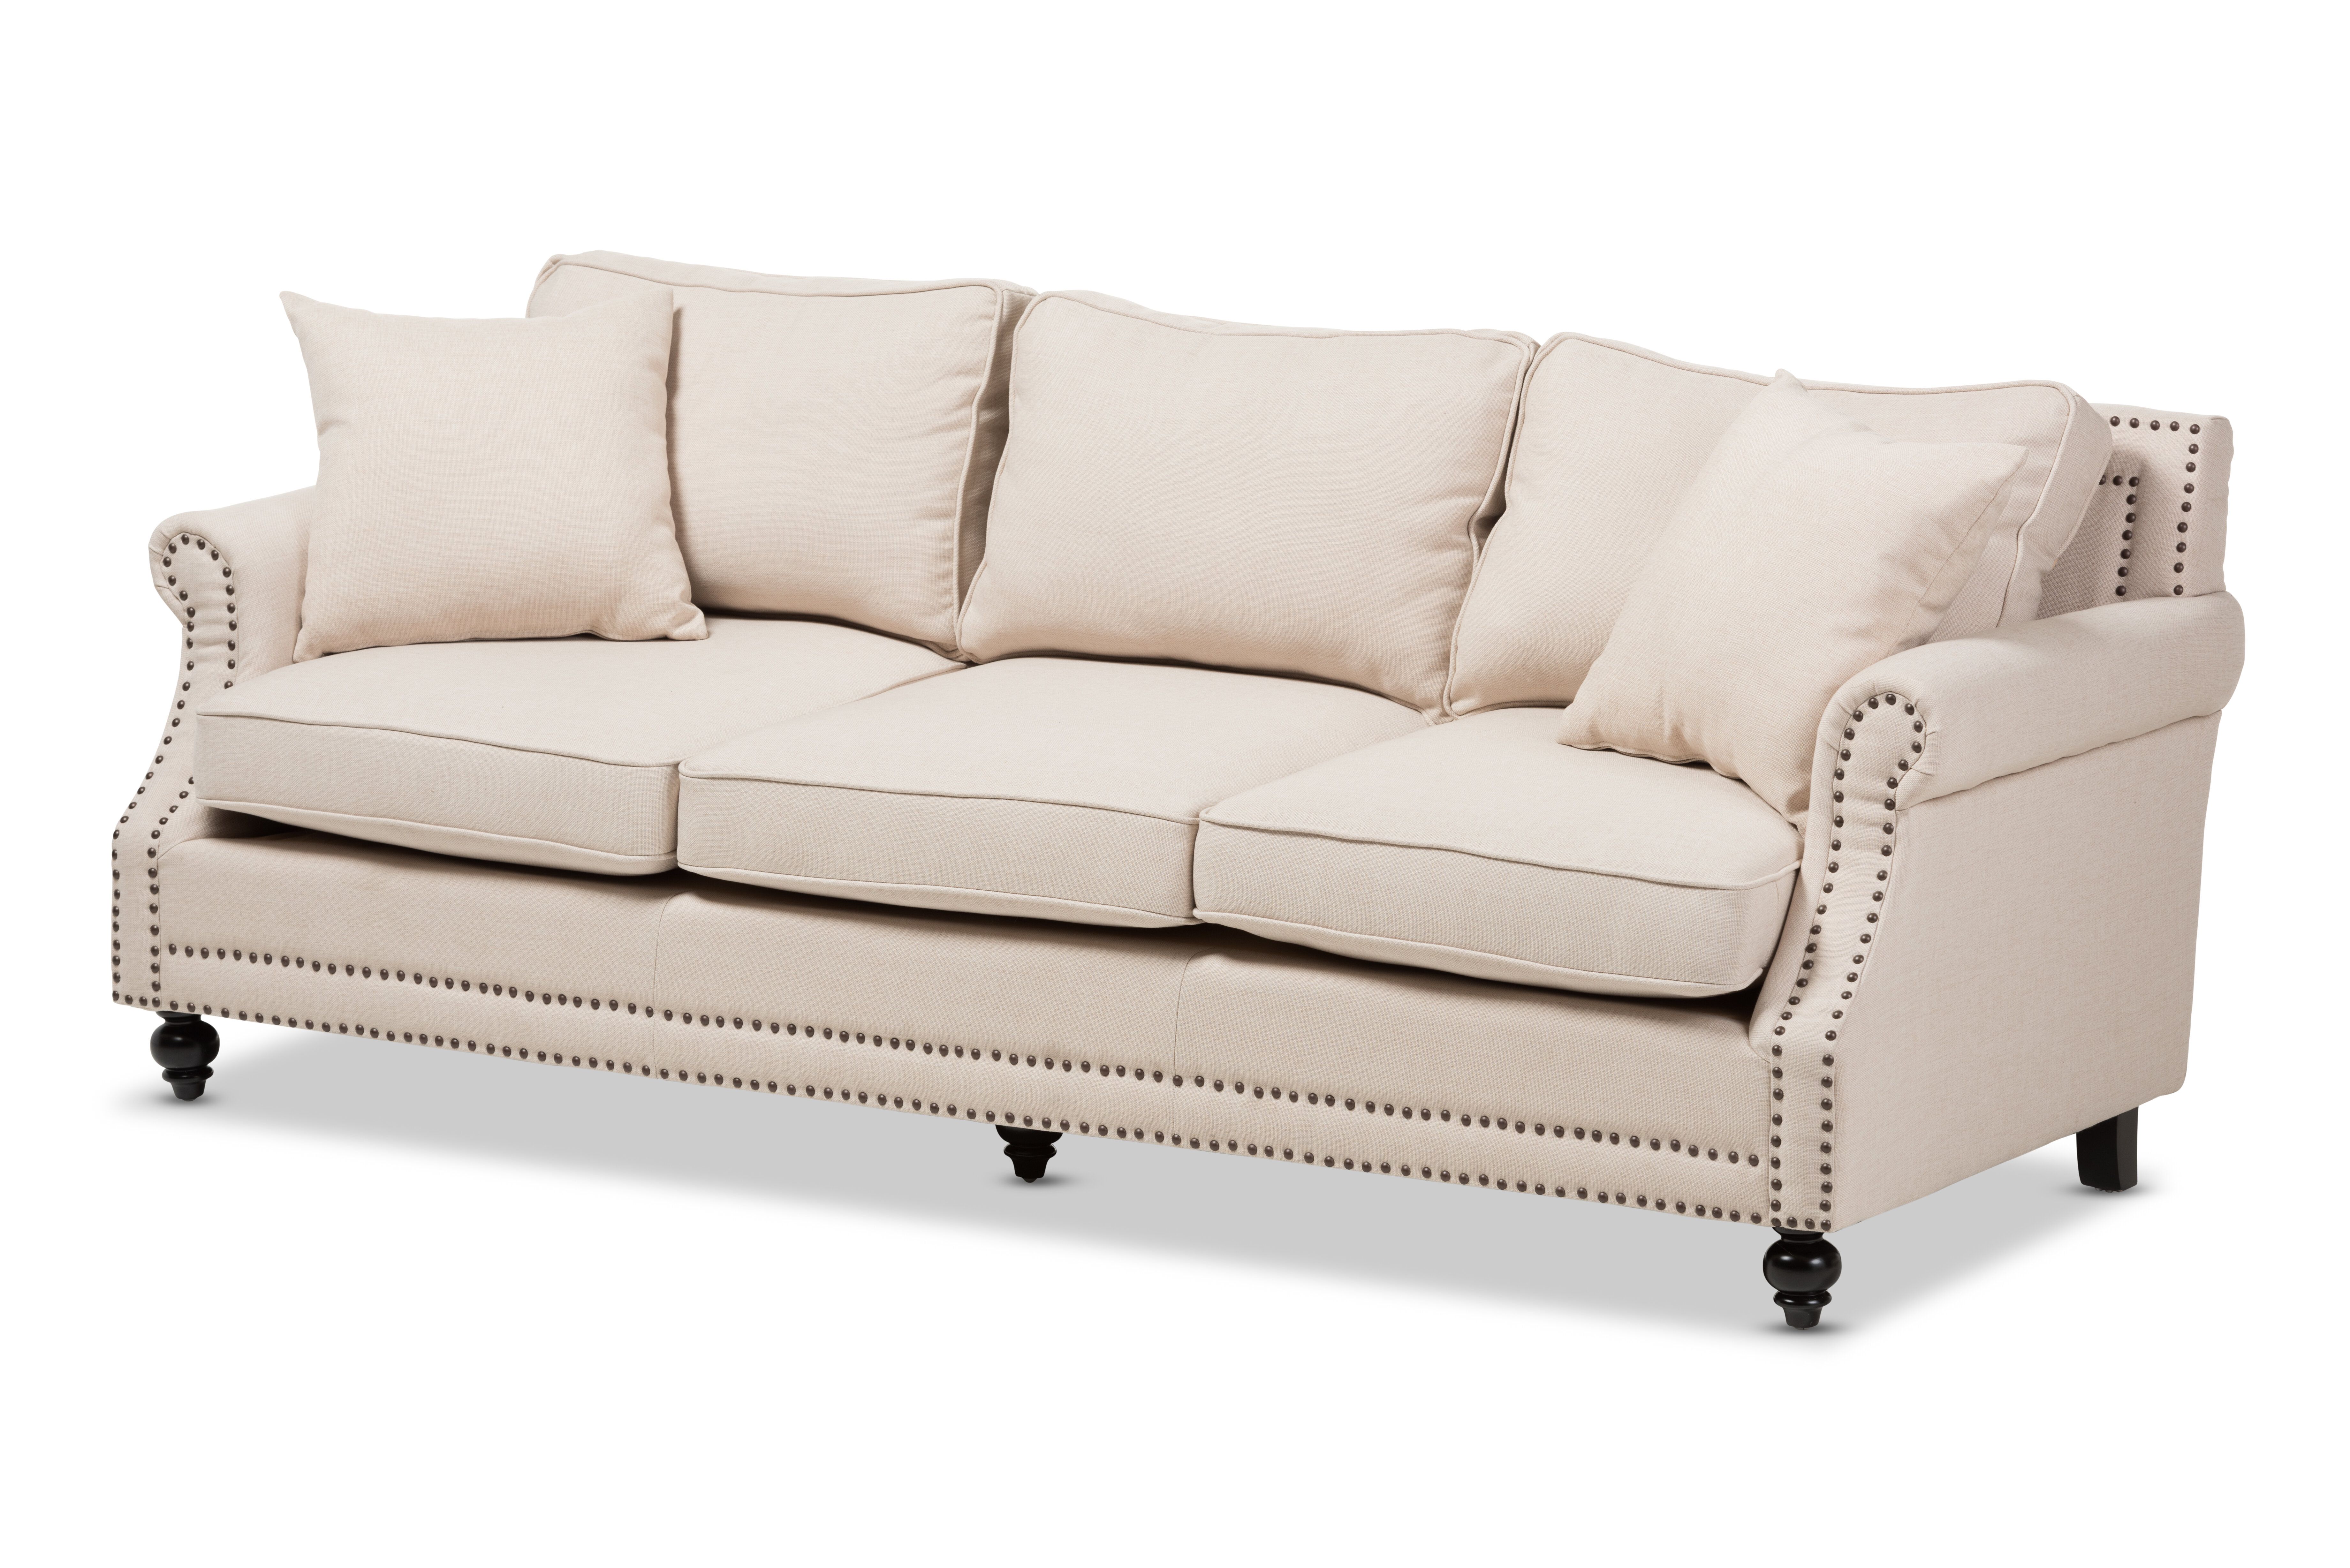 Wholesale Interiors Baxton Studio Mckenna Sofa U0026 Reviews | Wayfair